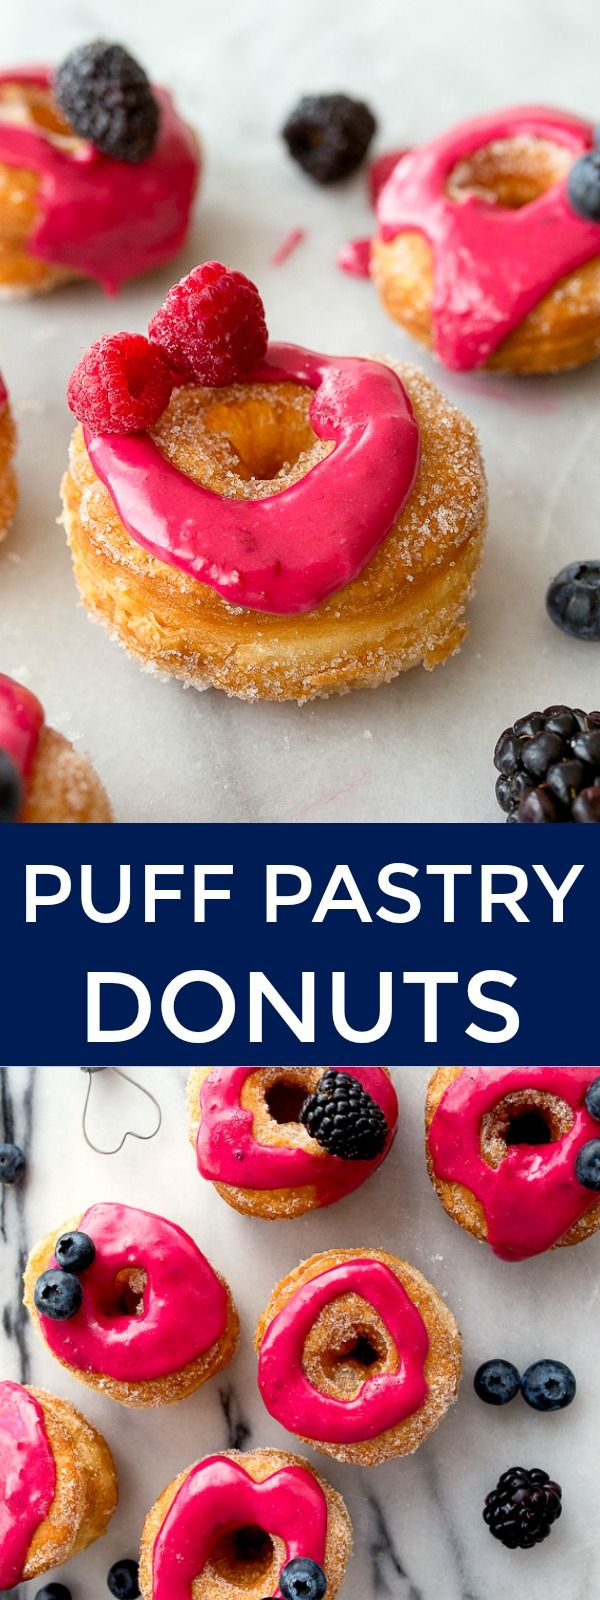 Homemade cronuts made from fried puff pastry dough. One box makes 6 donuts. Small batch donuts. Homemade fried donuts. Fried doughnuts at home.